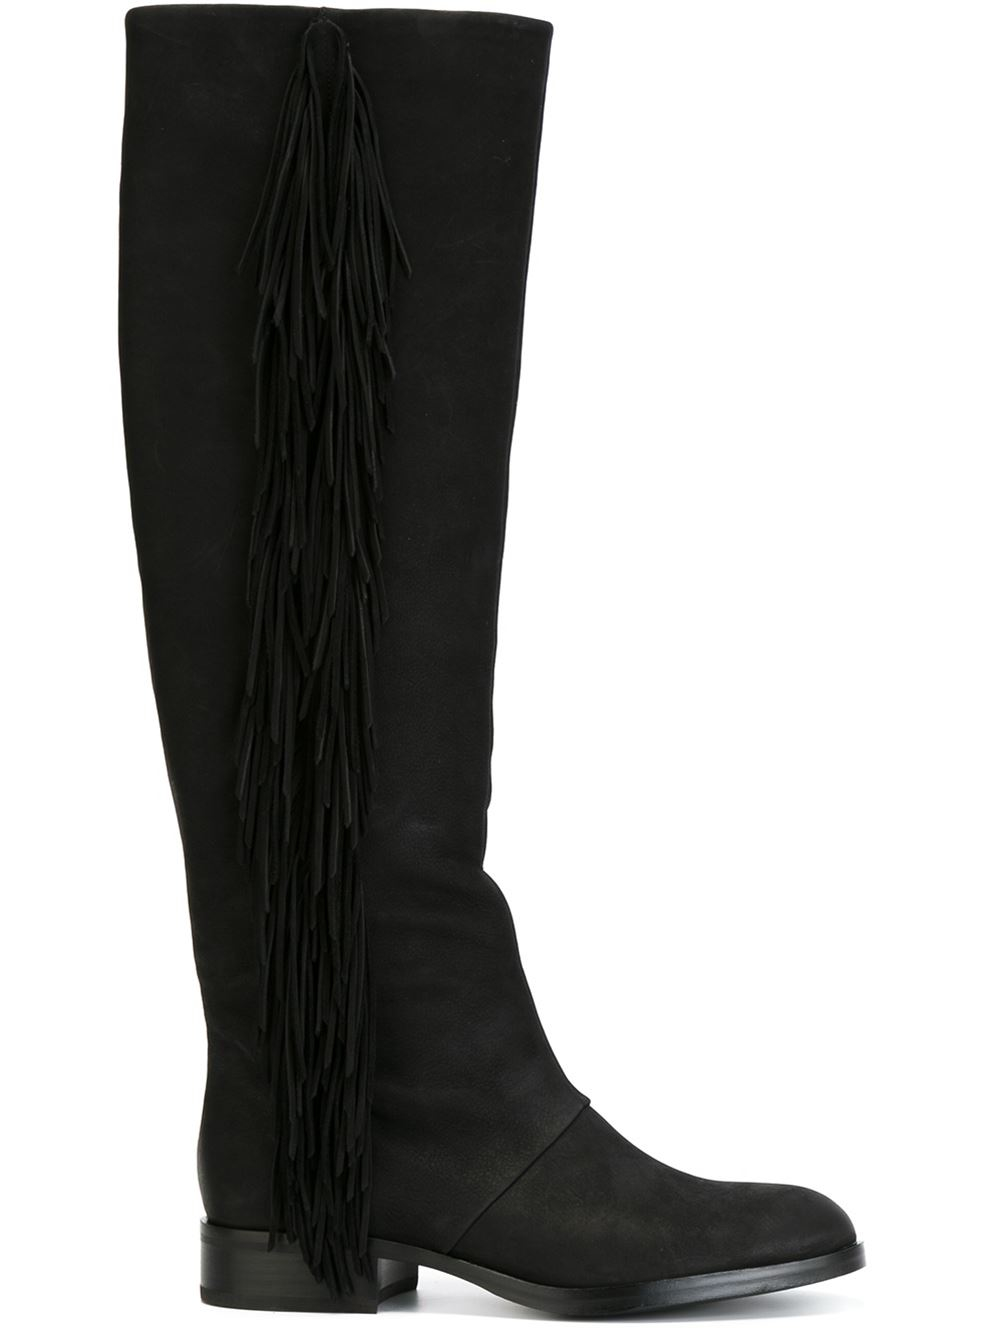 a7e9b5a152ffd Lyst - Sam Edelman Josephine Leather Knee-High Boots in Black